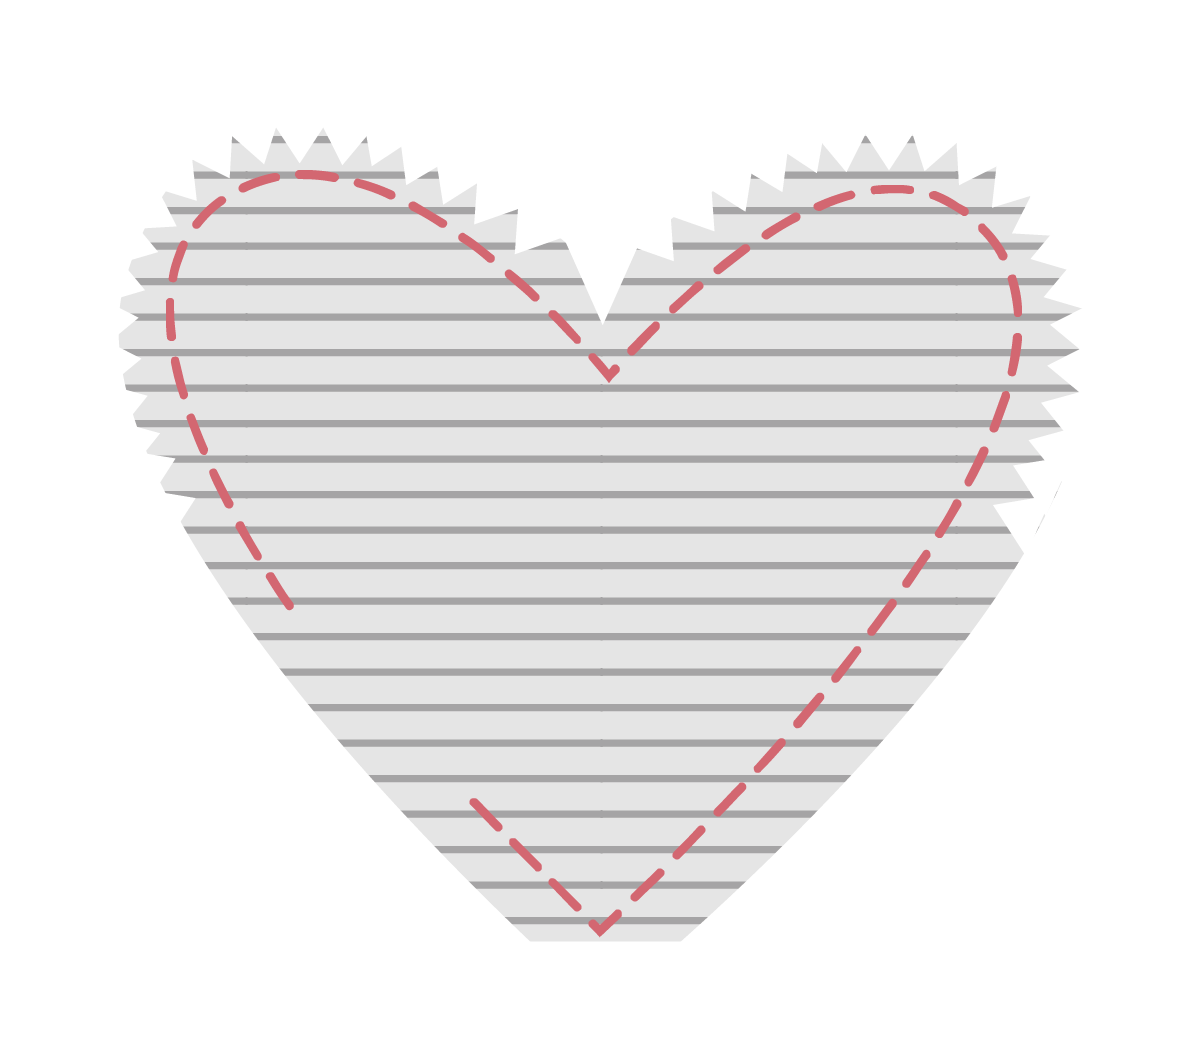 Heart Photo 04.png